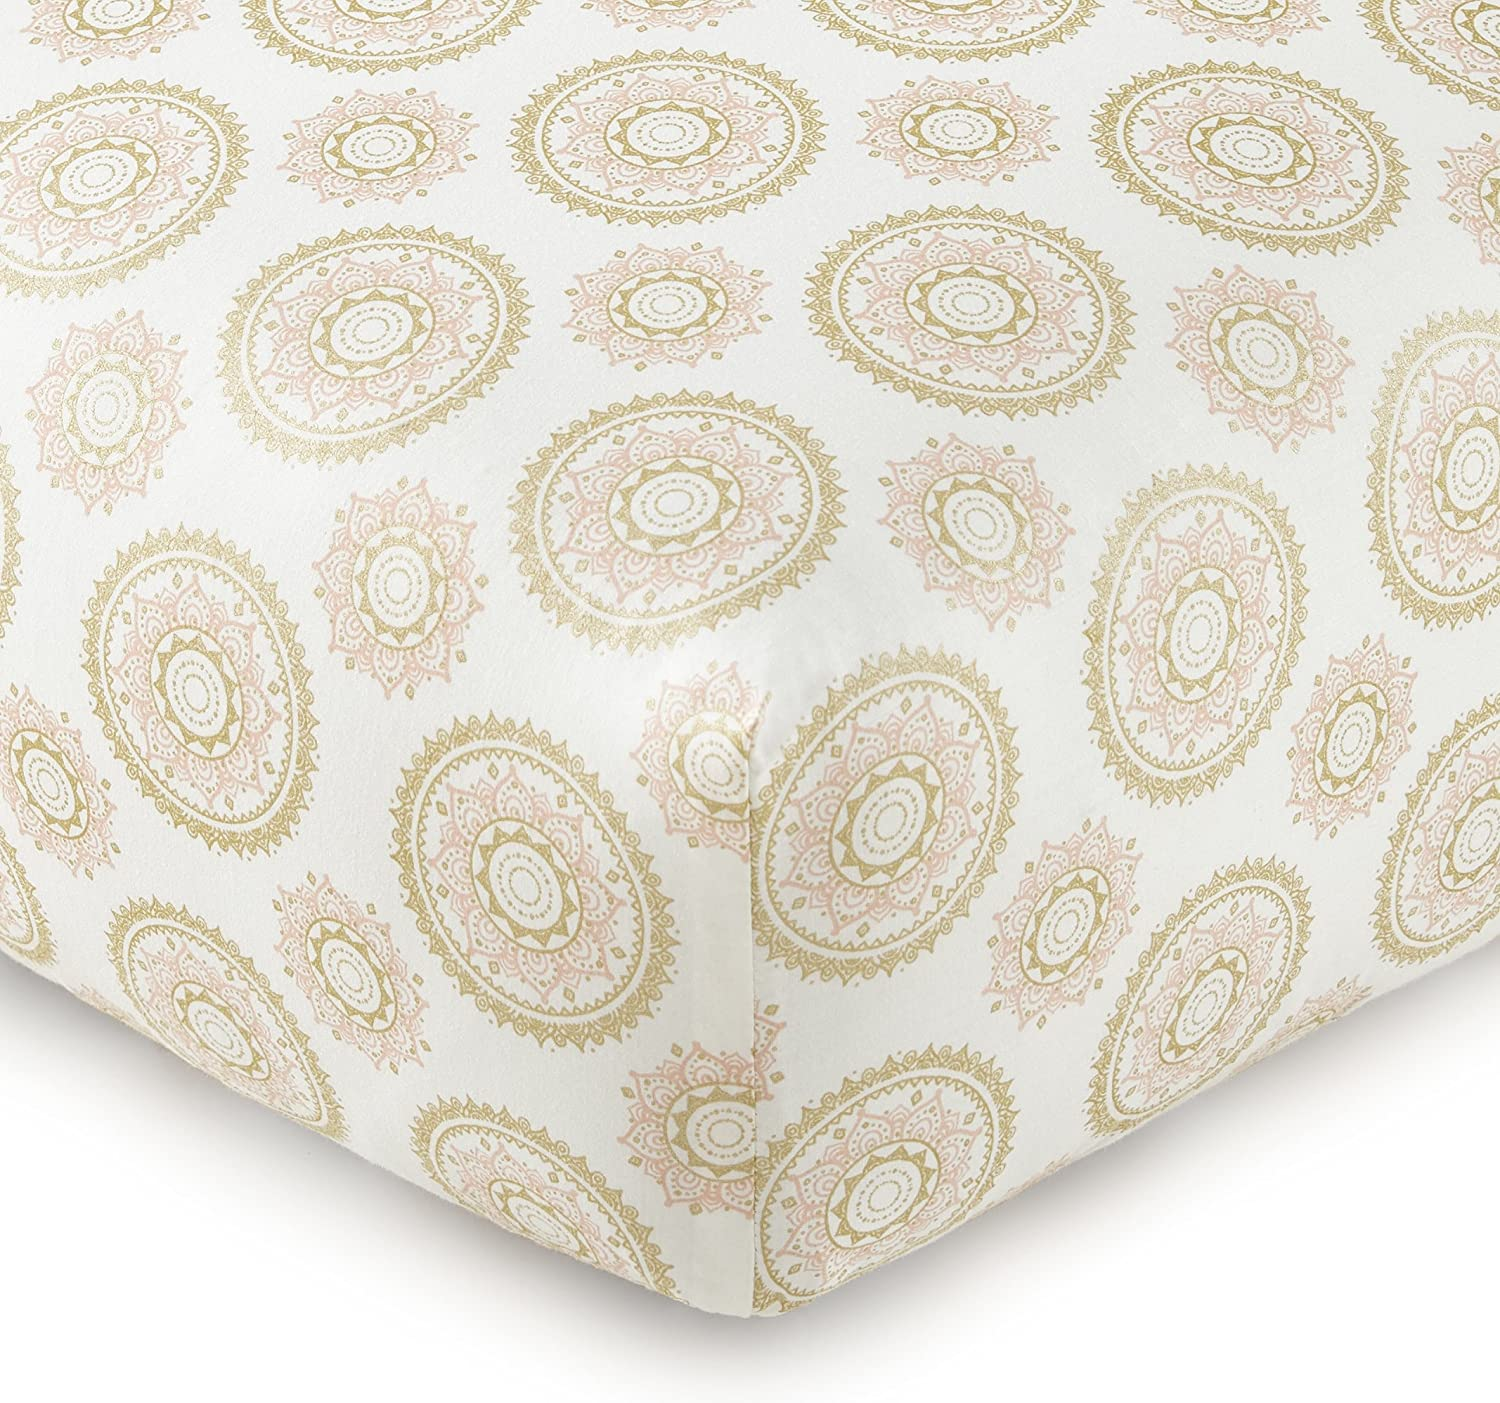 Levtex Home Baby Little Feather Medallion Fitted Sheet, Coral/Gold